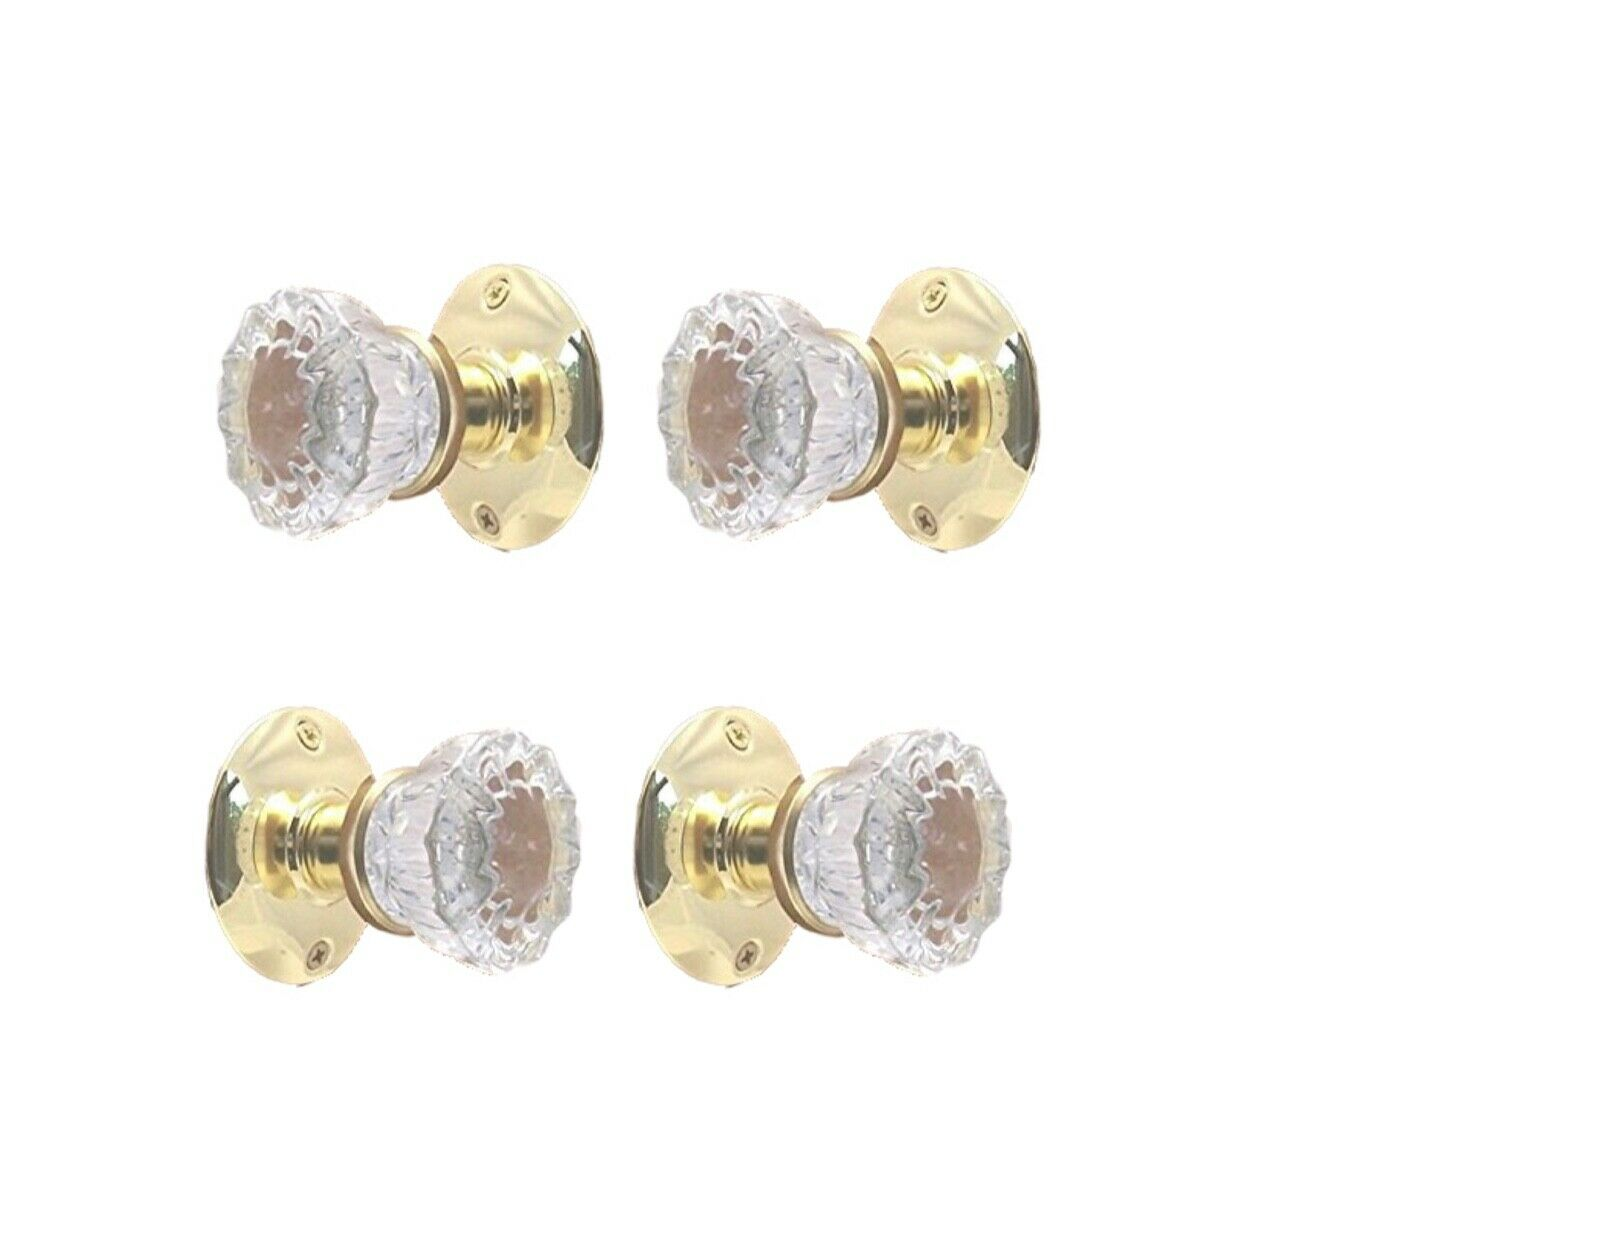 Two Complete PB FRENCH DOOR Knob Set- KNOBS On Both Sides of Two FRENCH DOORS